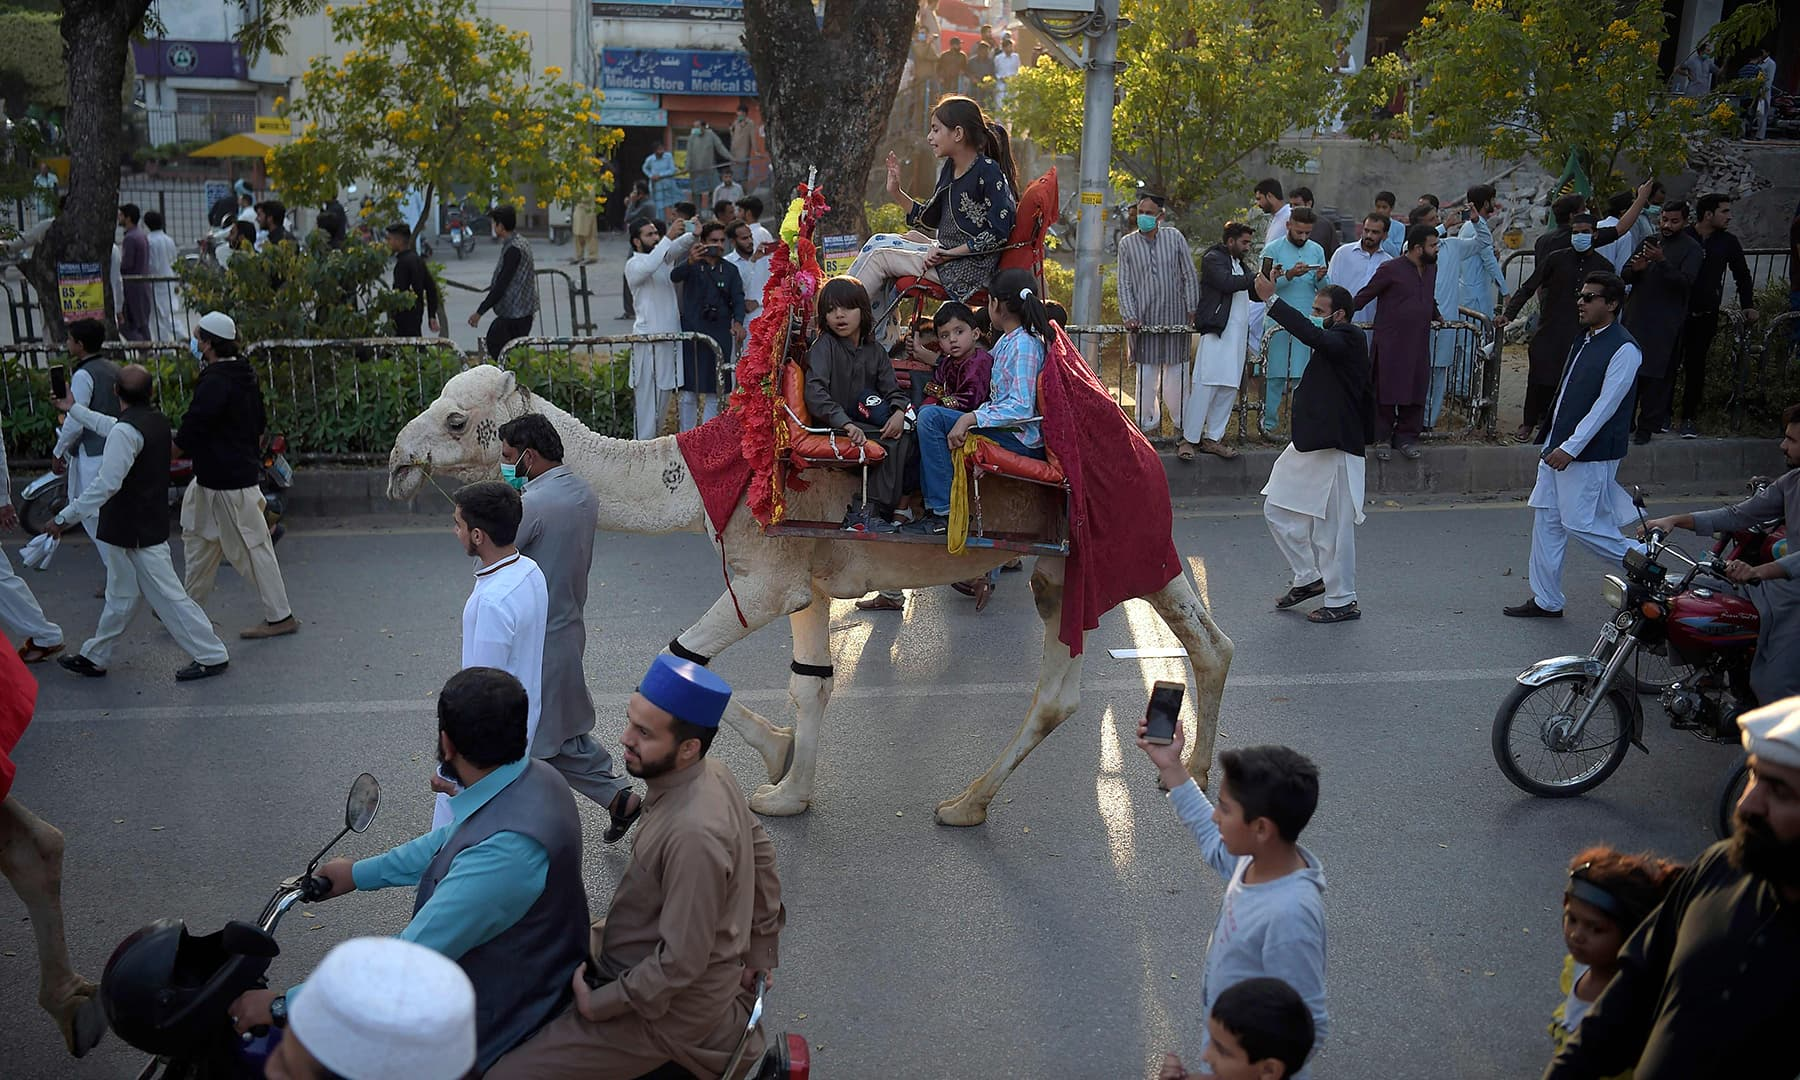 Children ride on a camel during a rally to celebrate Eid-i-Miladun Nabi in Islamabad. — AFP